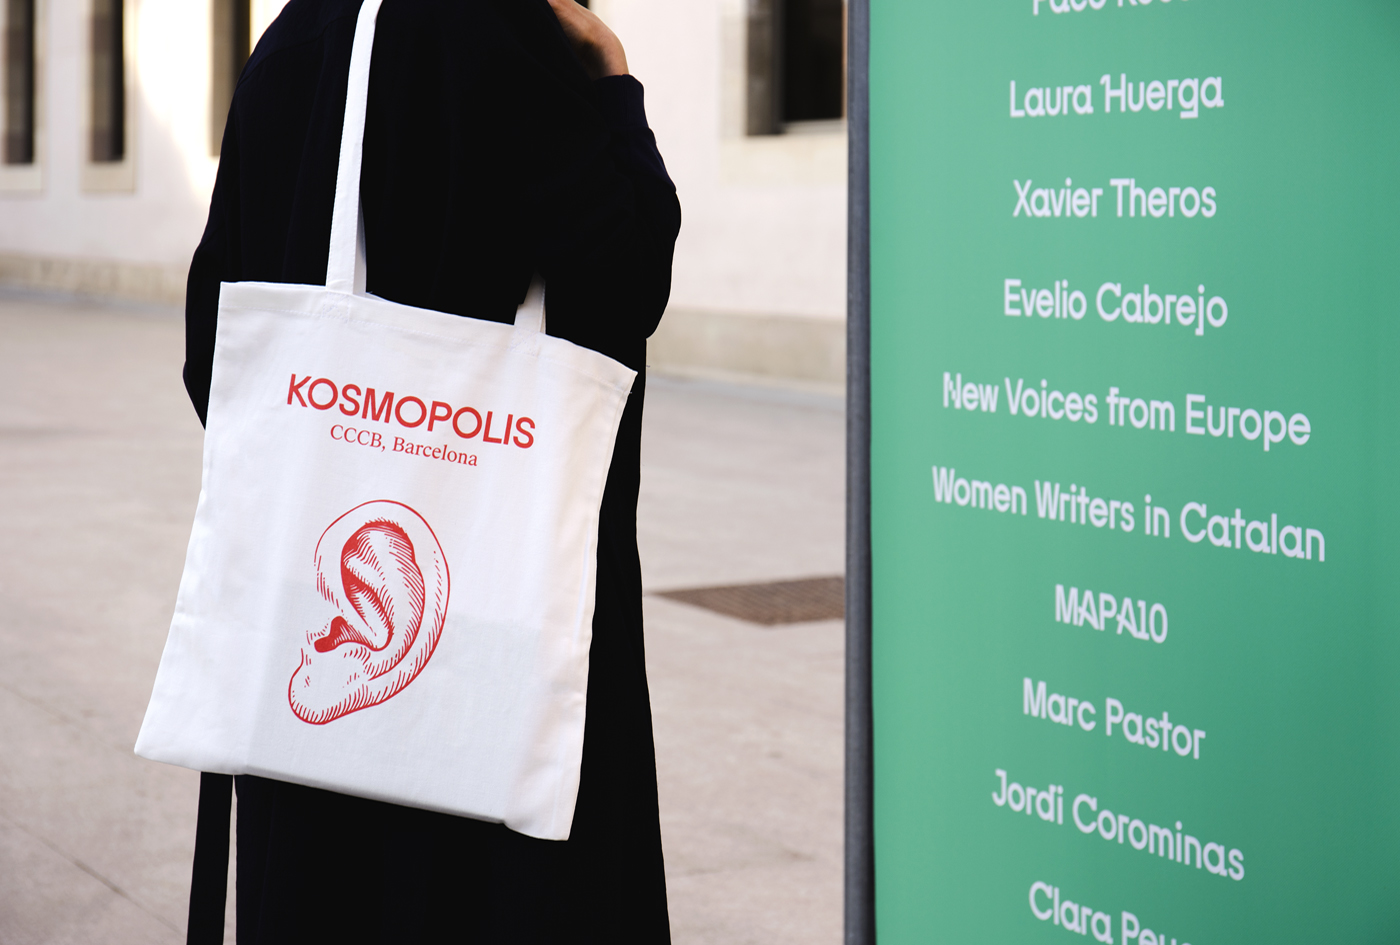 Visual identity and branded tote bag by Hey for Barcelona literature festival Kosmopolis